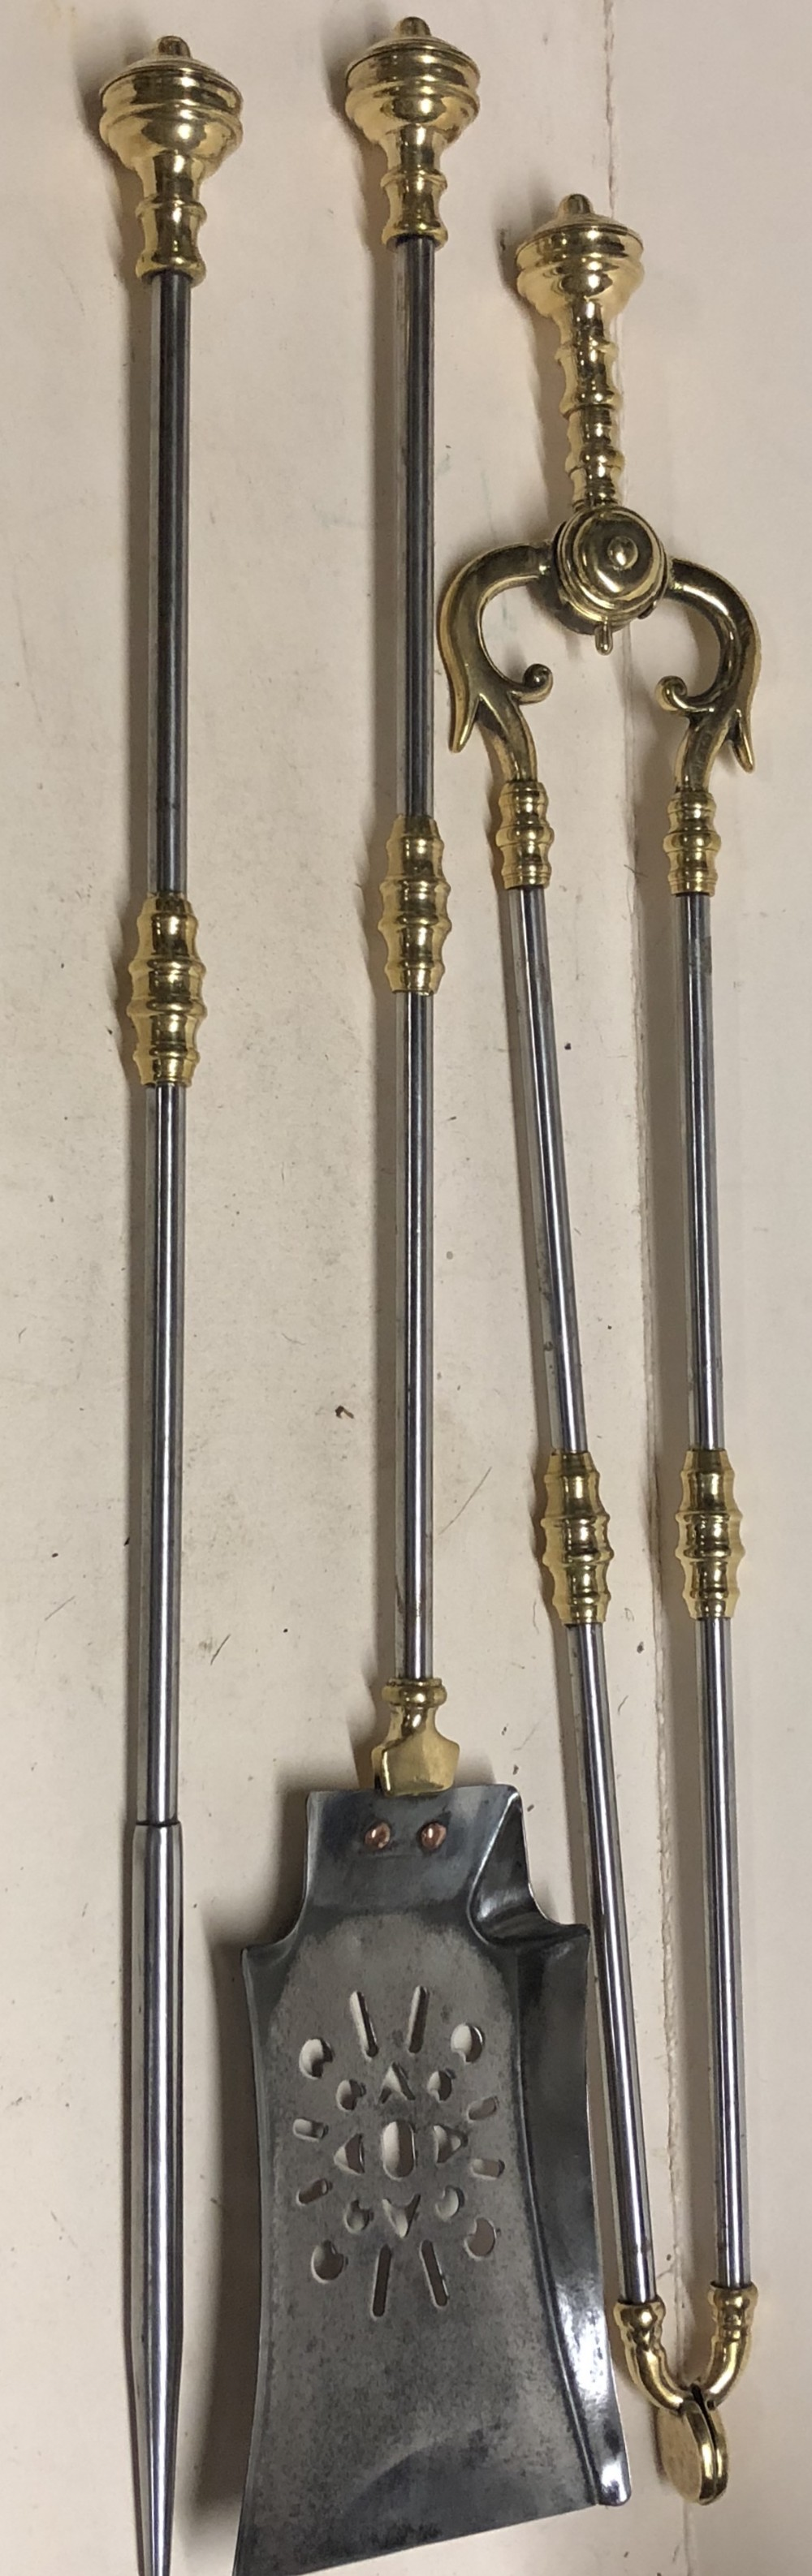 c19th set of steel and brass fire irons